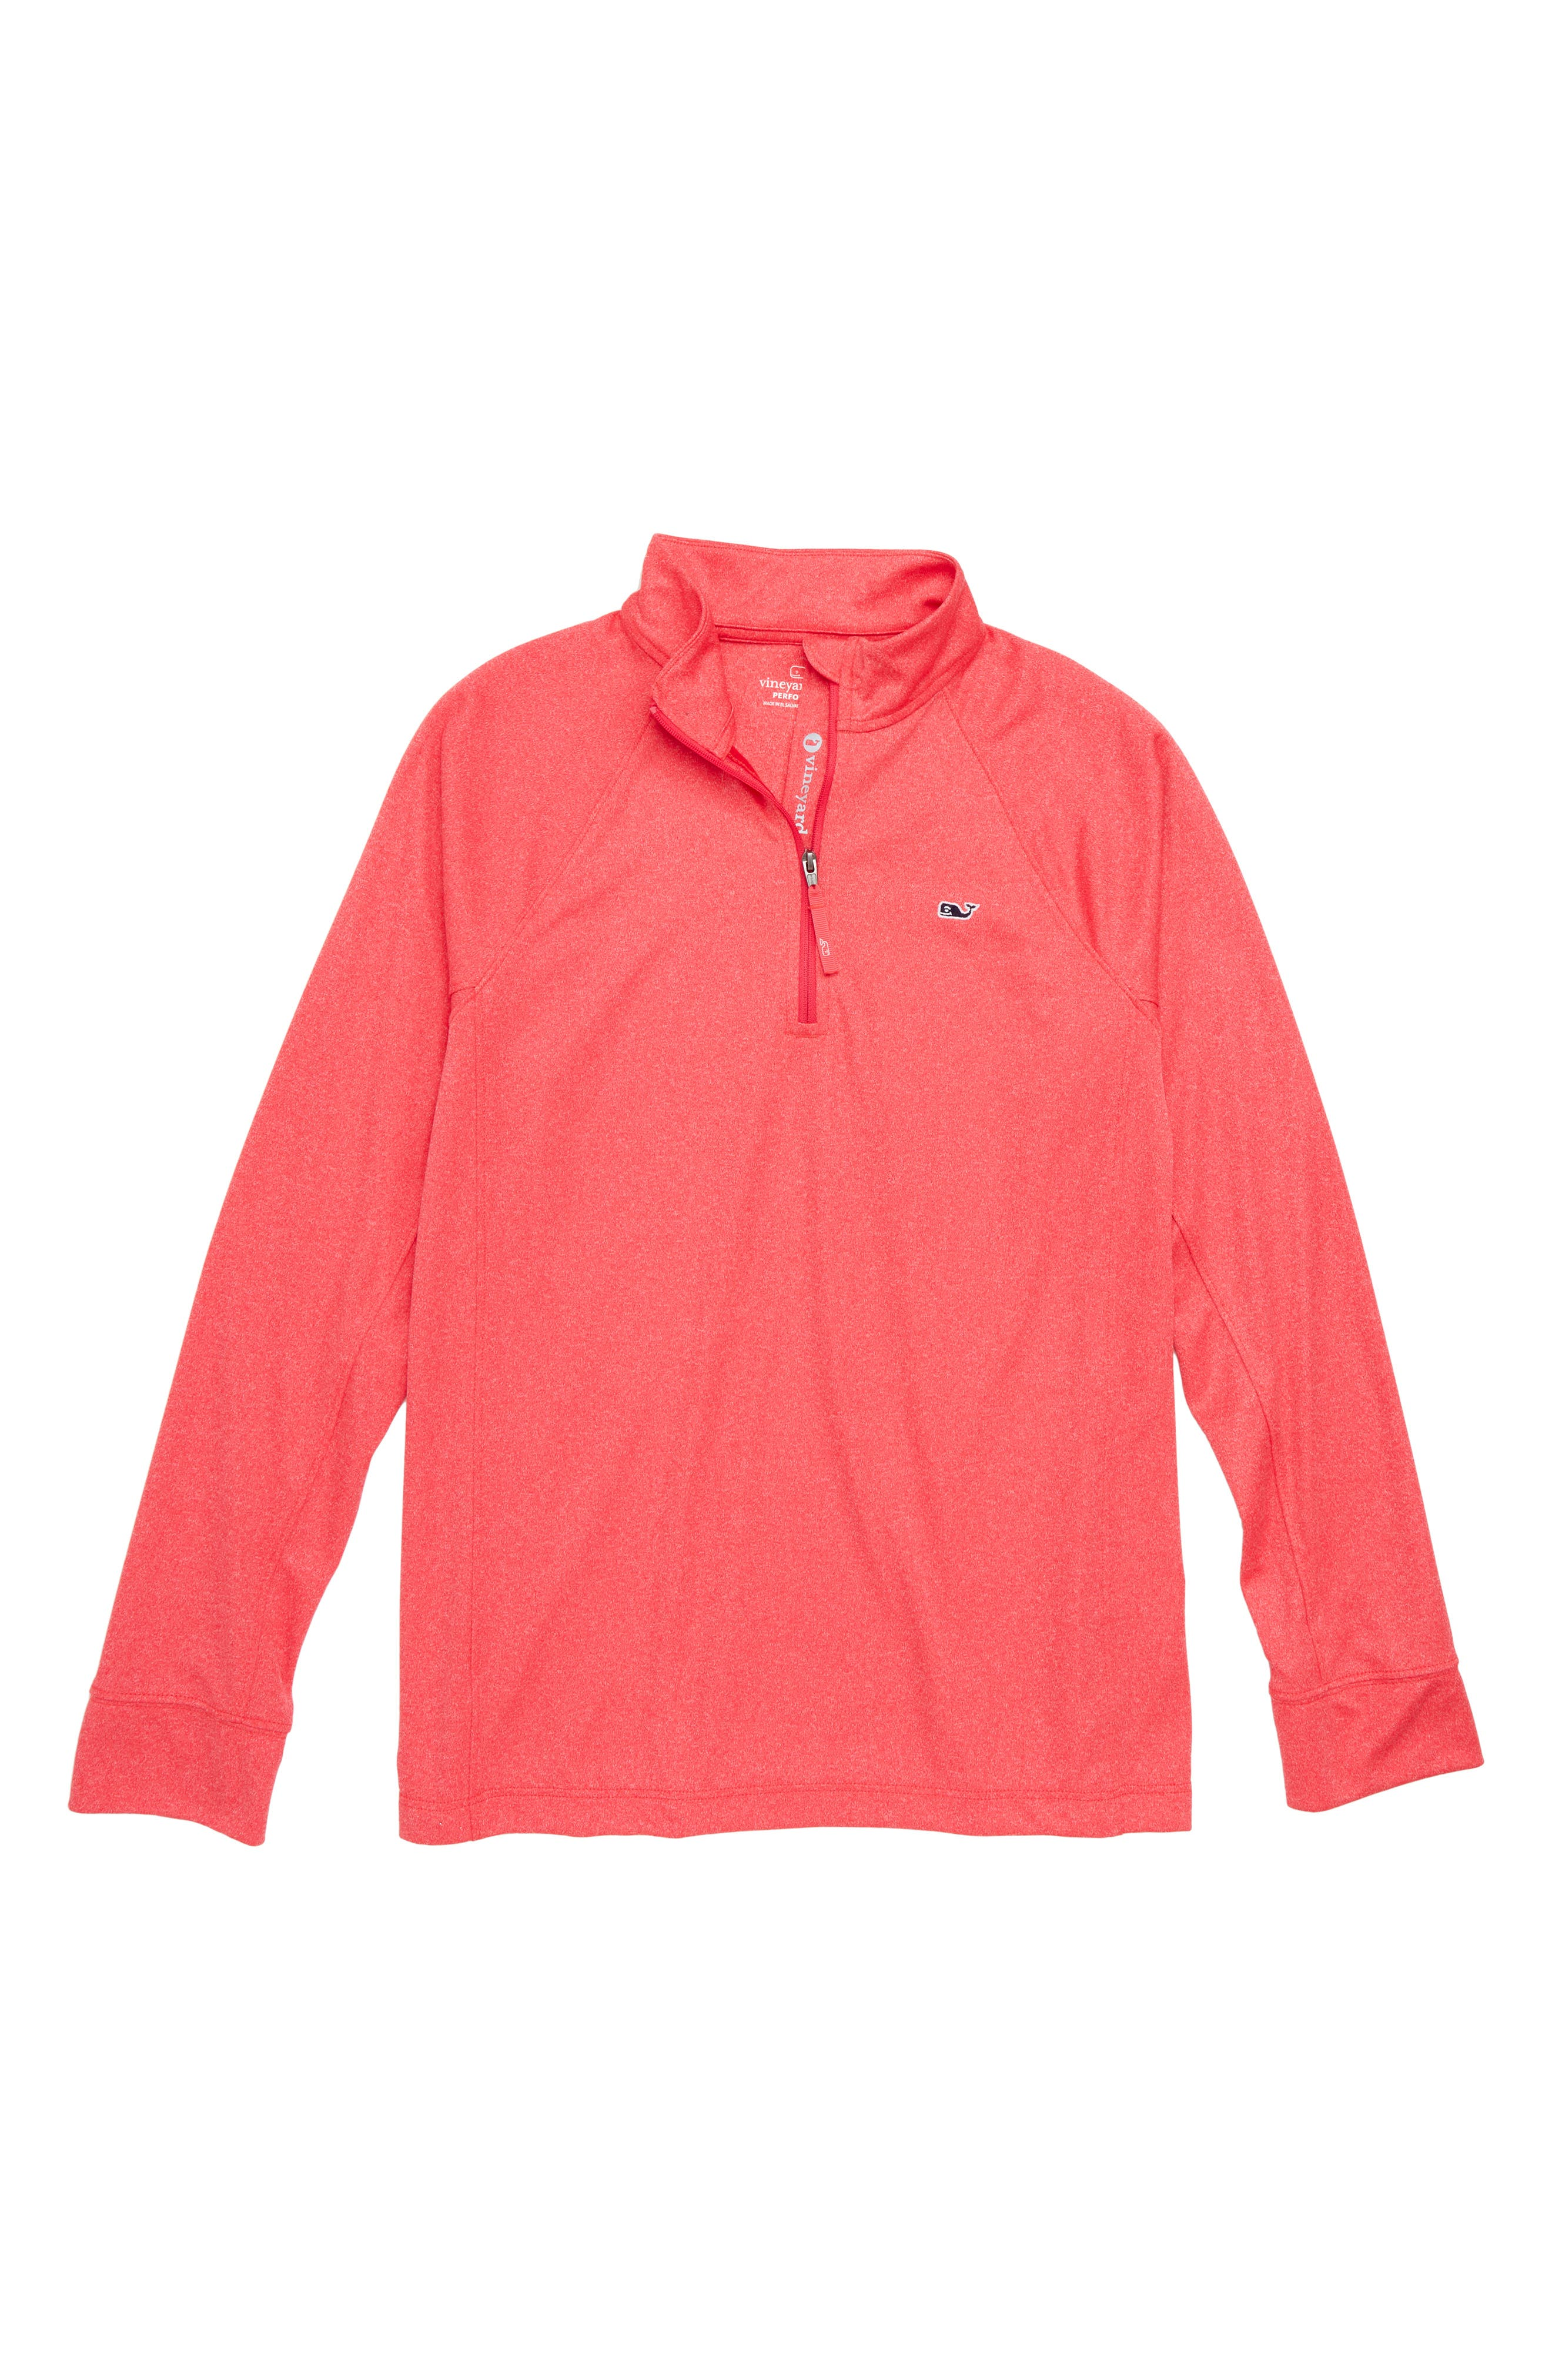 Quarter Zip Pullover,                             Main thumbnail 1, color,                             Lighthouse Red